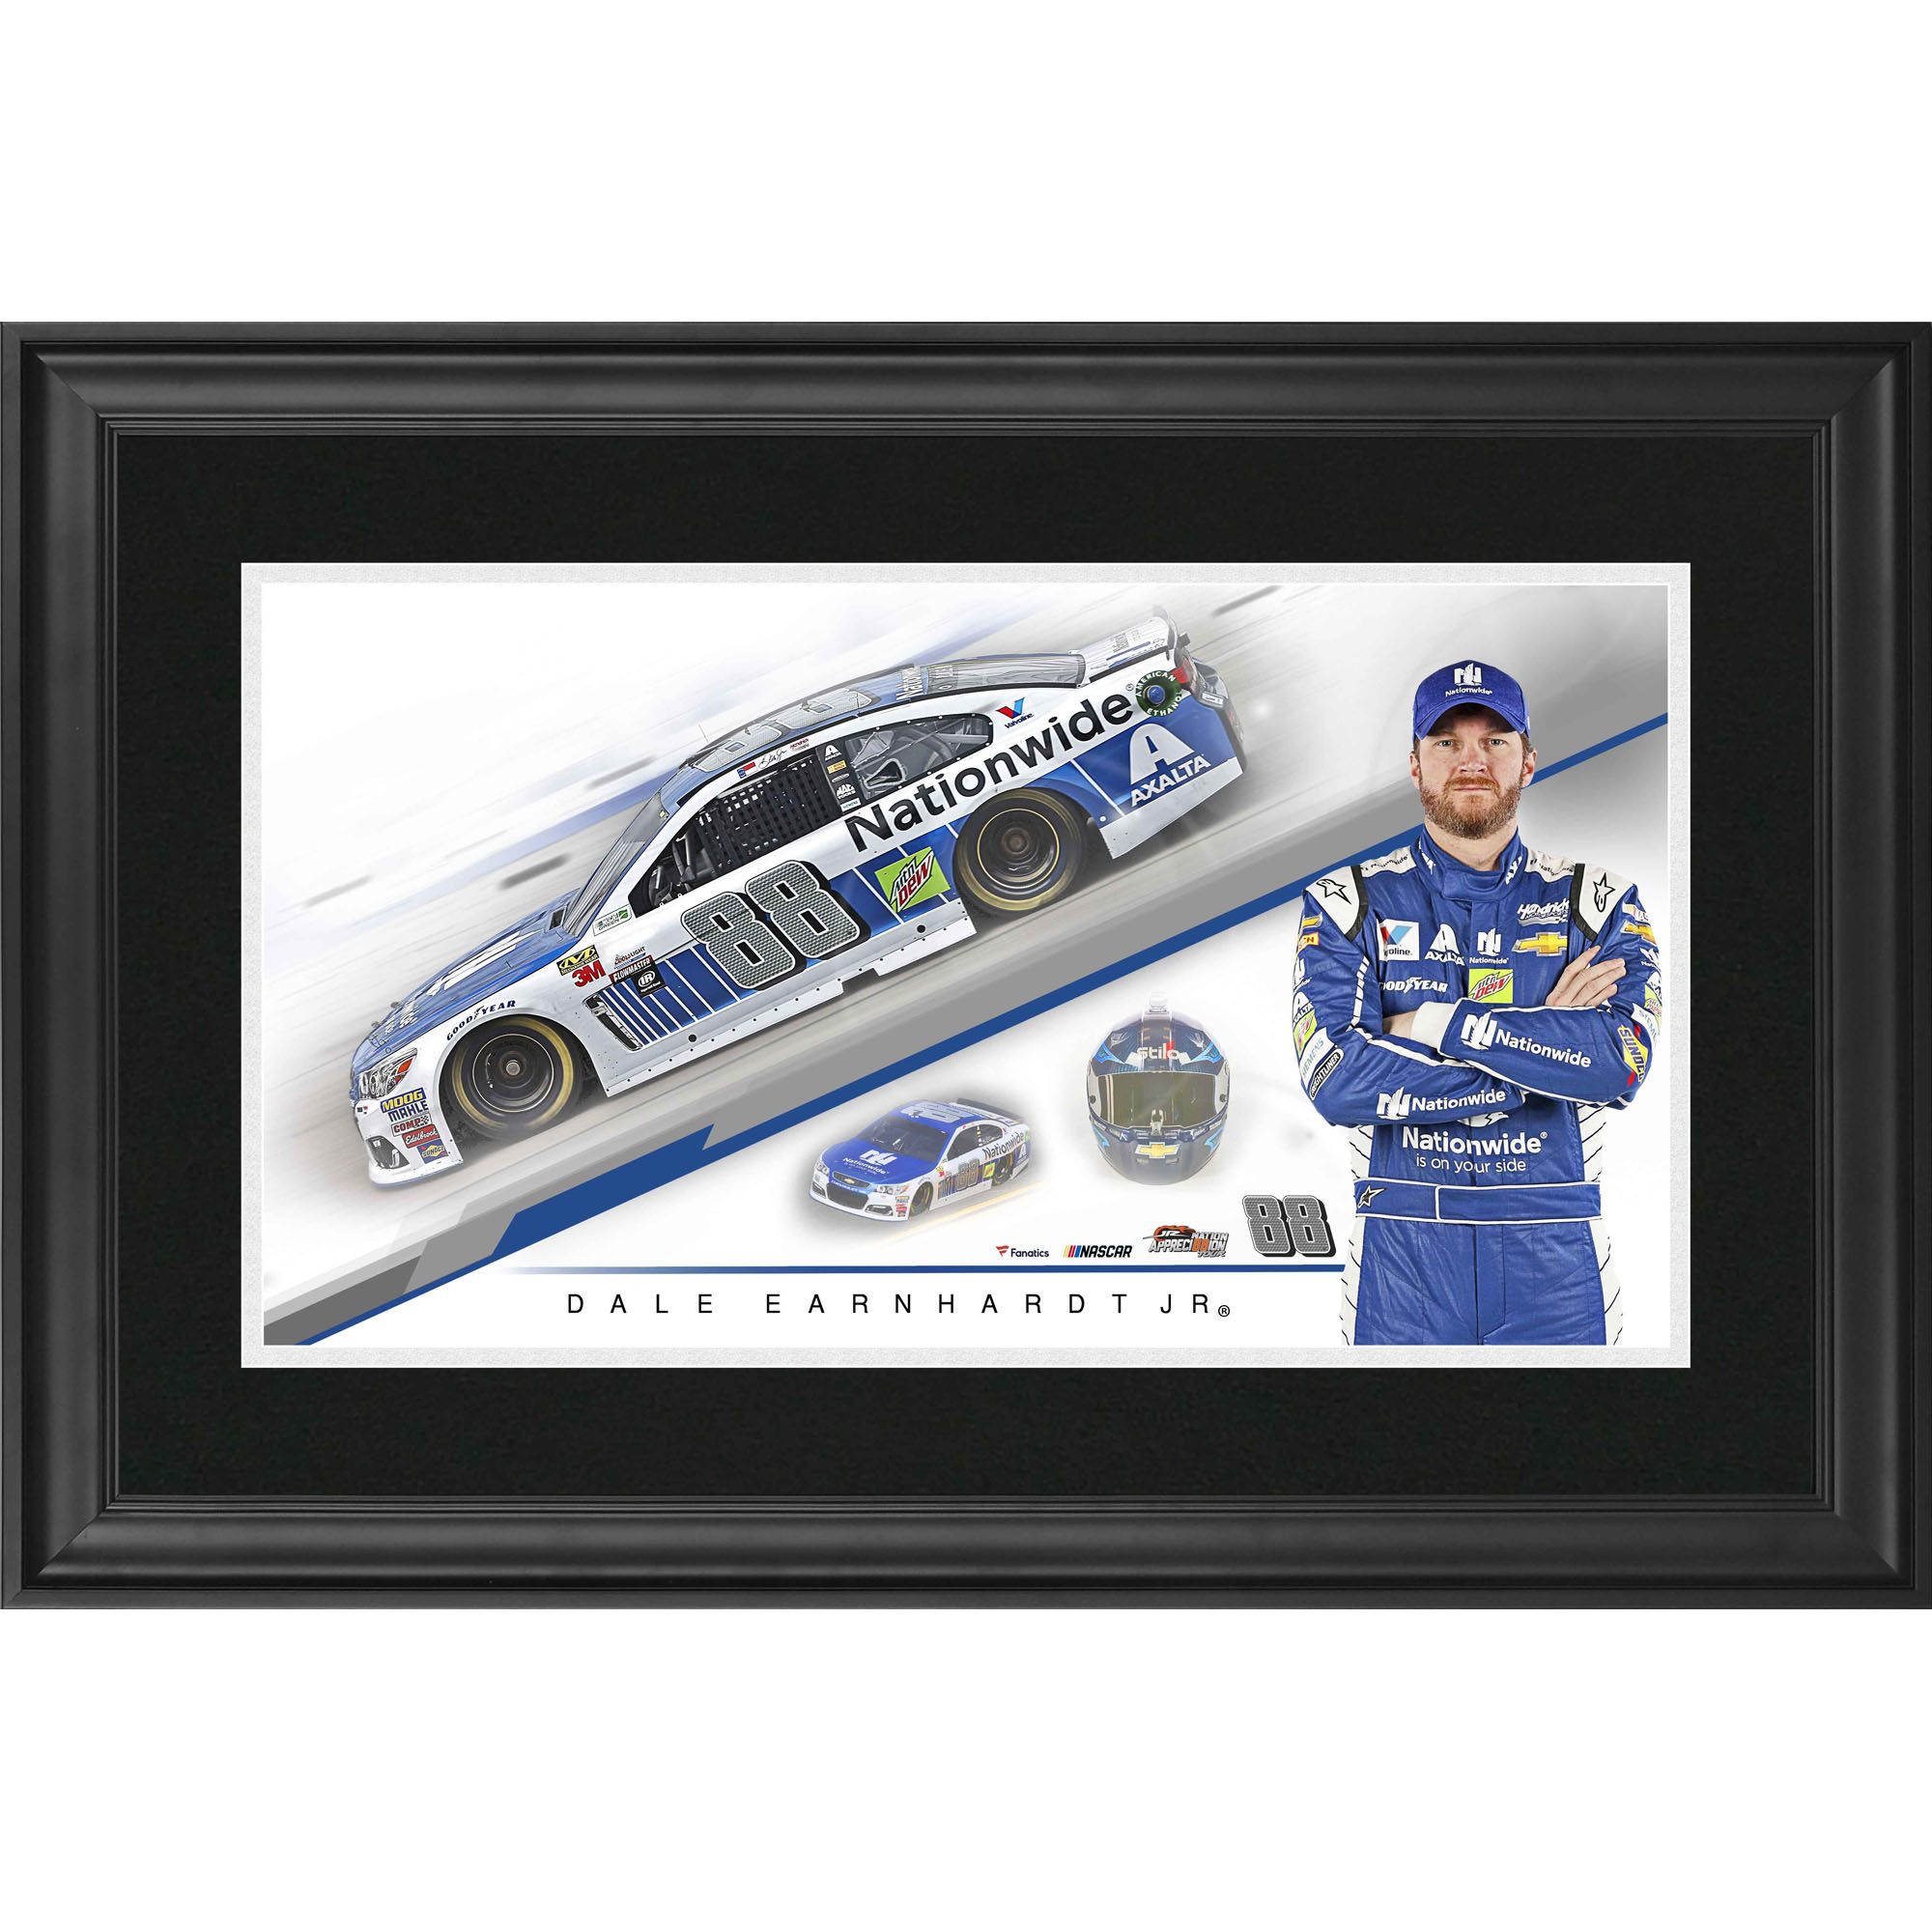 "Dale Earnhardt Jr. Fanatics Authentic Framed 10"" x 18"" Nationwide Panoramic Photograph - No Size"